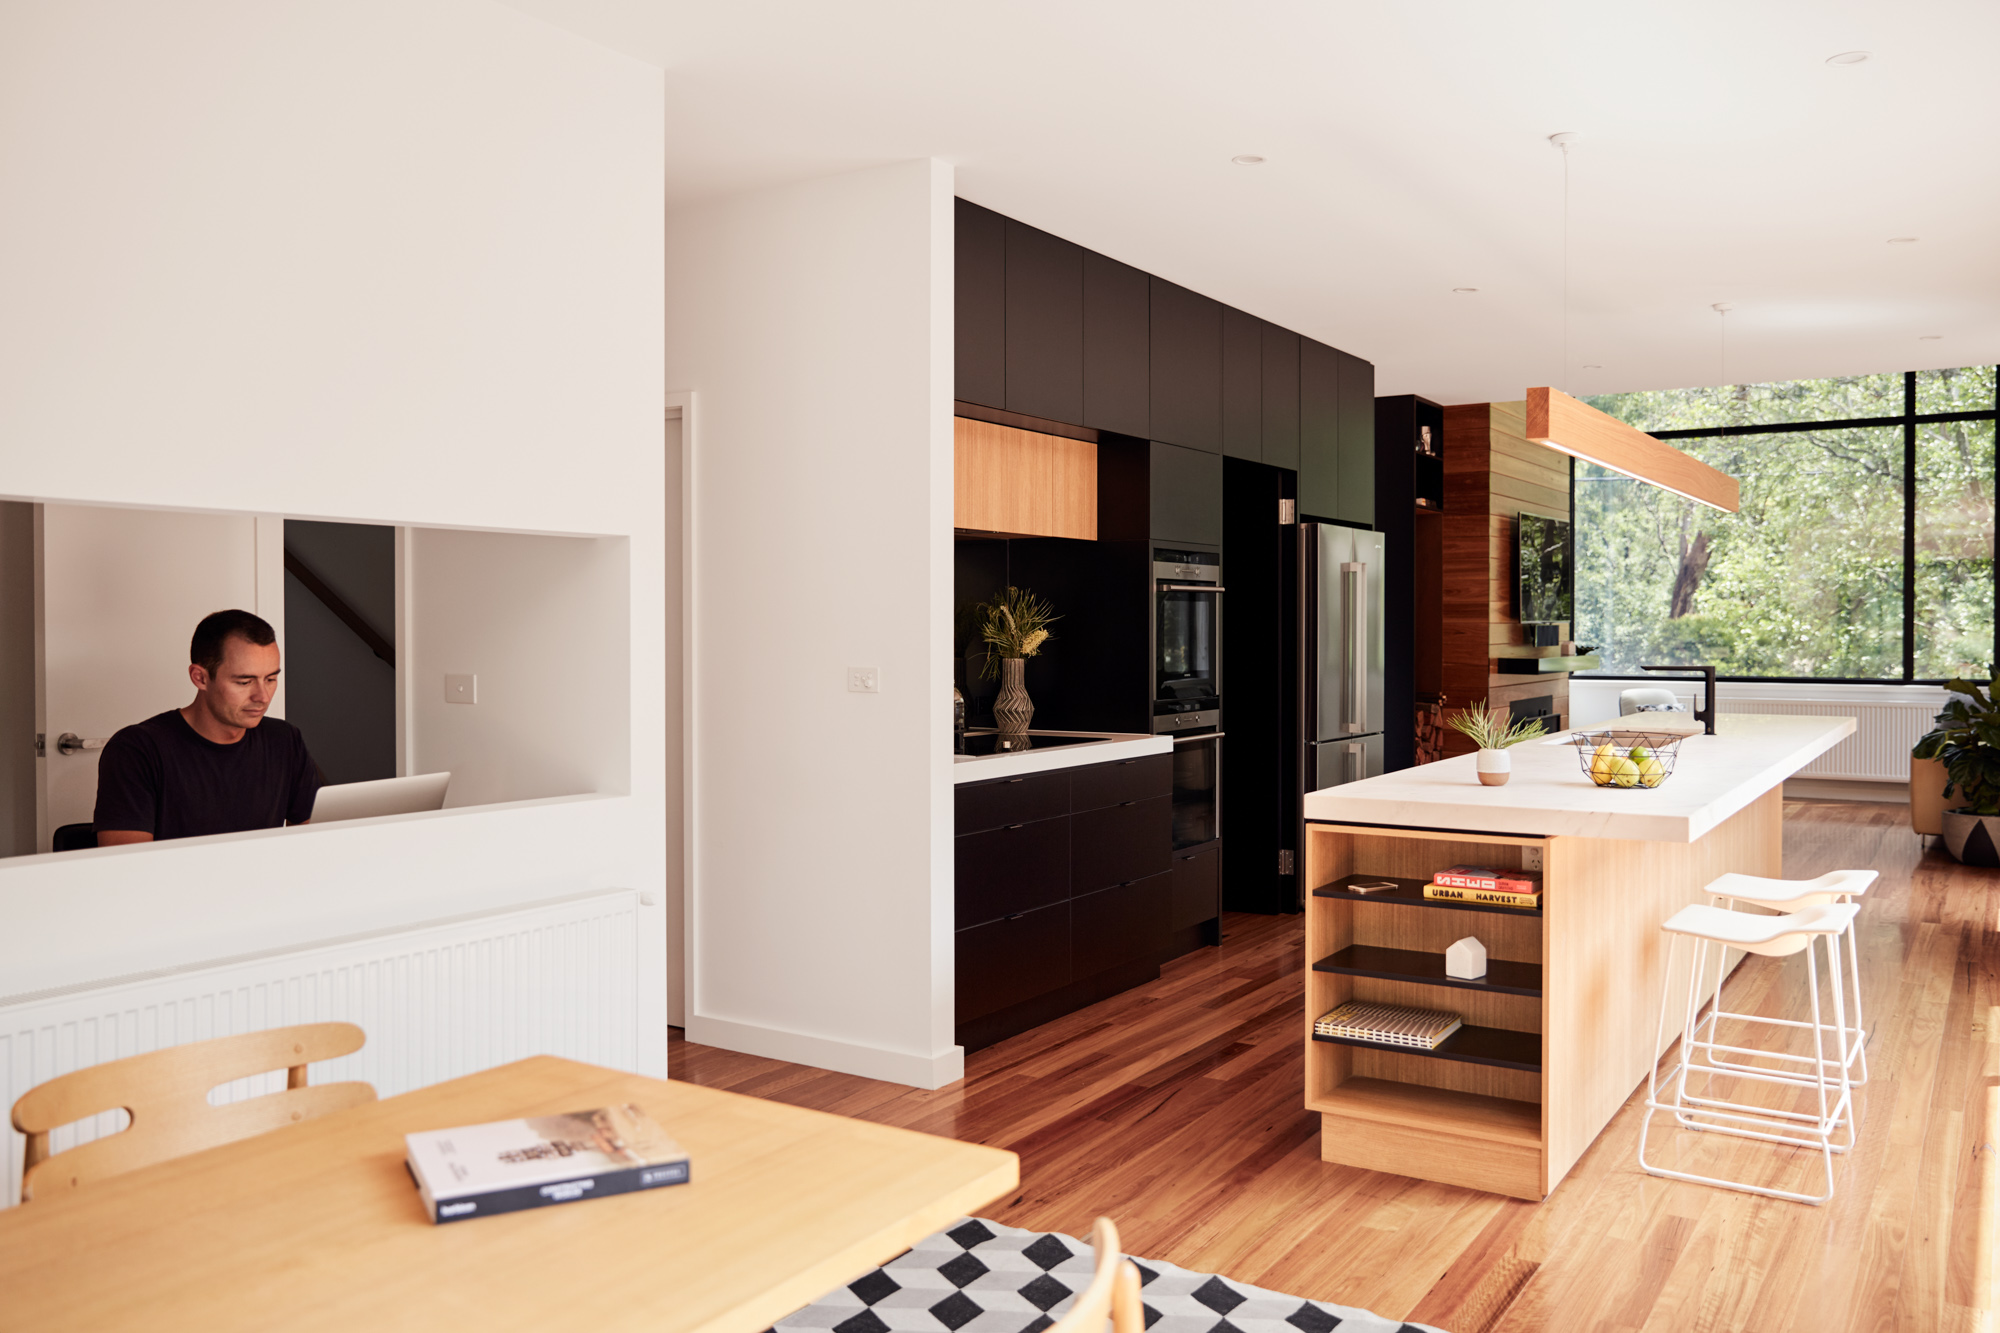 Gallery Of Blackburn House By Archiblox Local Australian Interior Architecture And Residential Design Blackburn, Vic Image 15